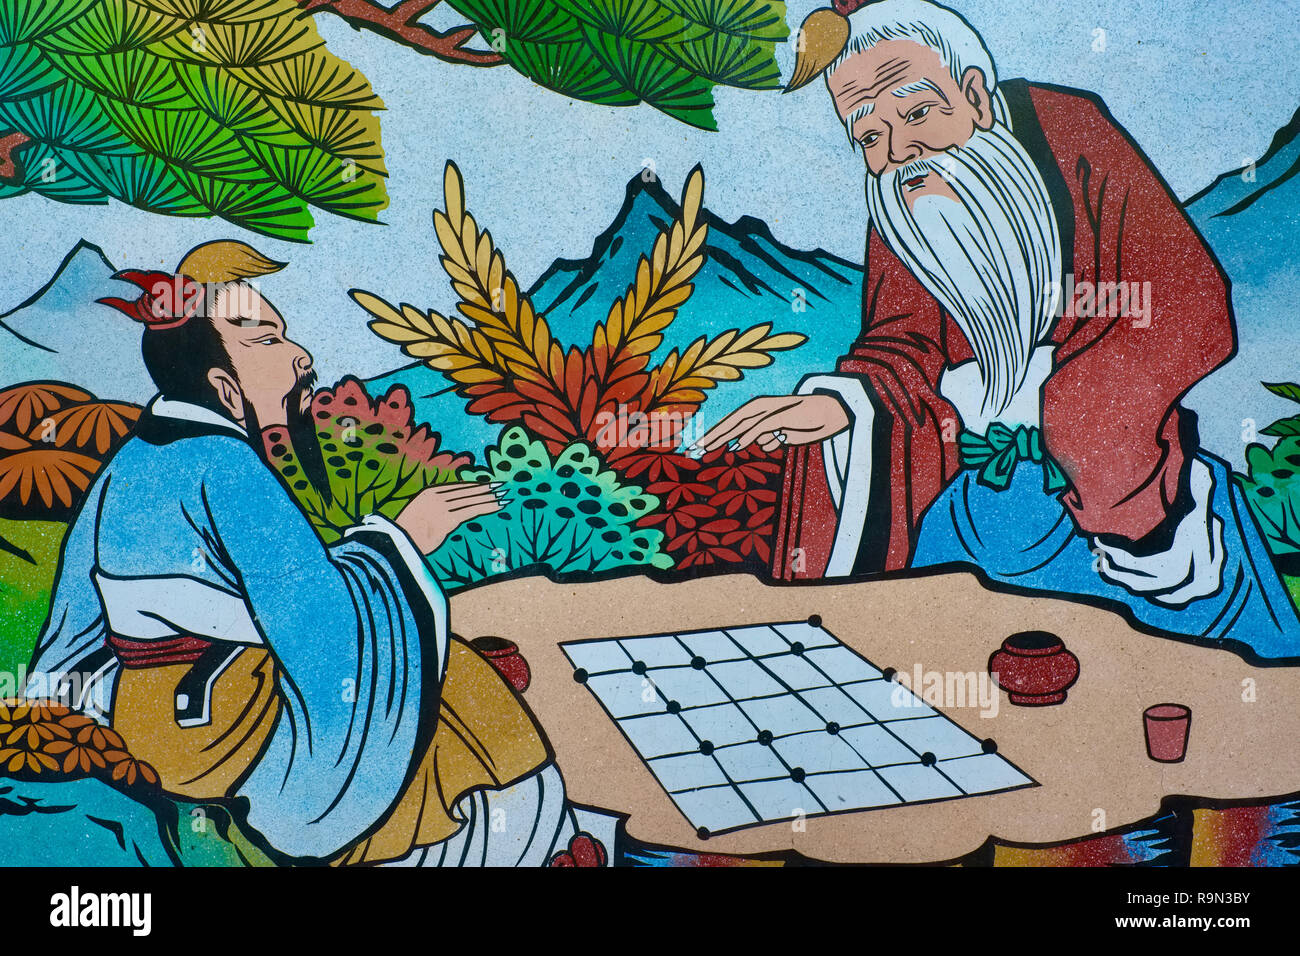 A painting on the outer wall of Sanjao Tha Ruea, a Taoist temple in Tha Ruea, Phuket, Thailand, showing a historical scene of a game of Chinese chess - Stock Image